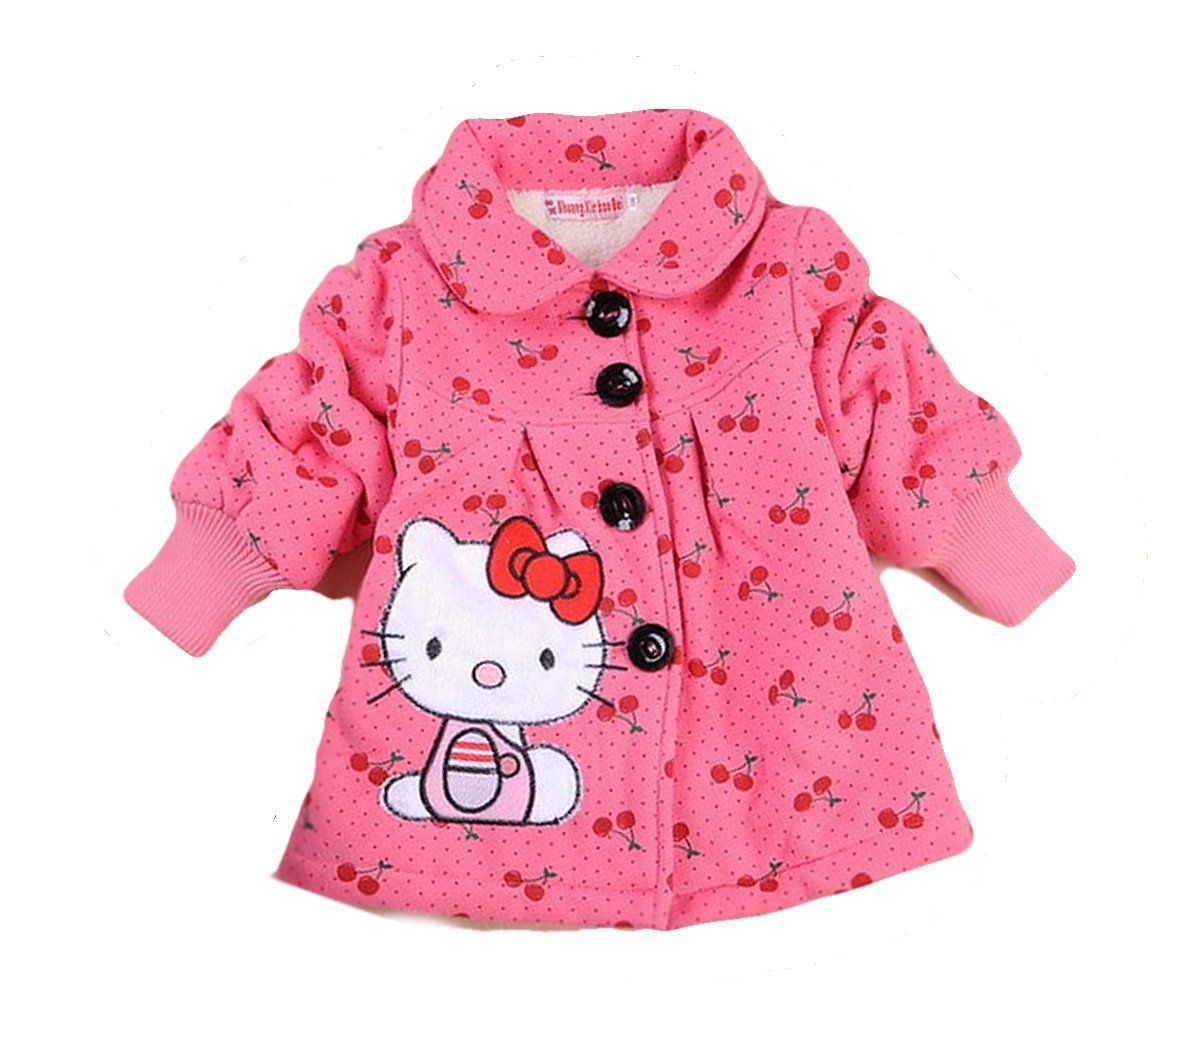 5659176a0 SOPO Hello Kitty Toddler Girls Winter Jacket 2-5Y Outerw Coat Pink ...